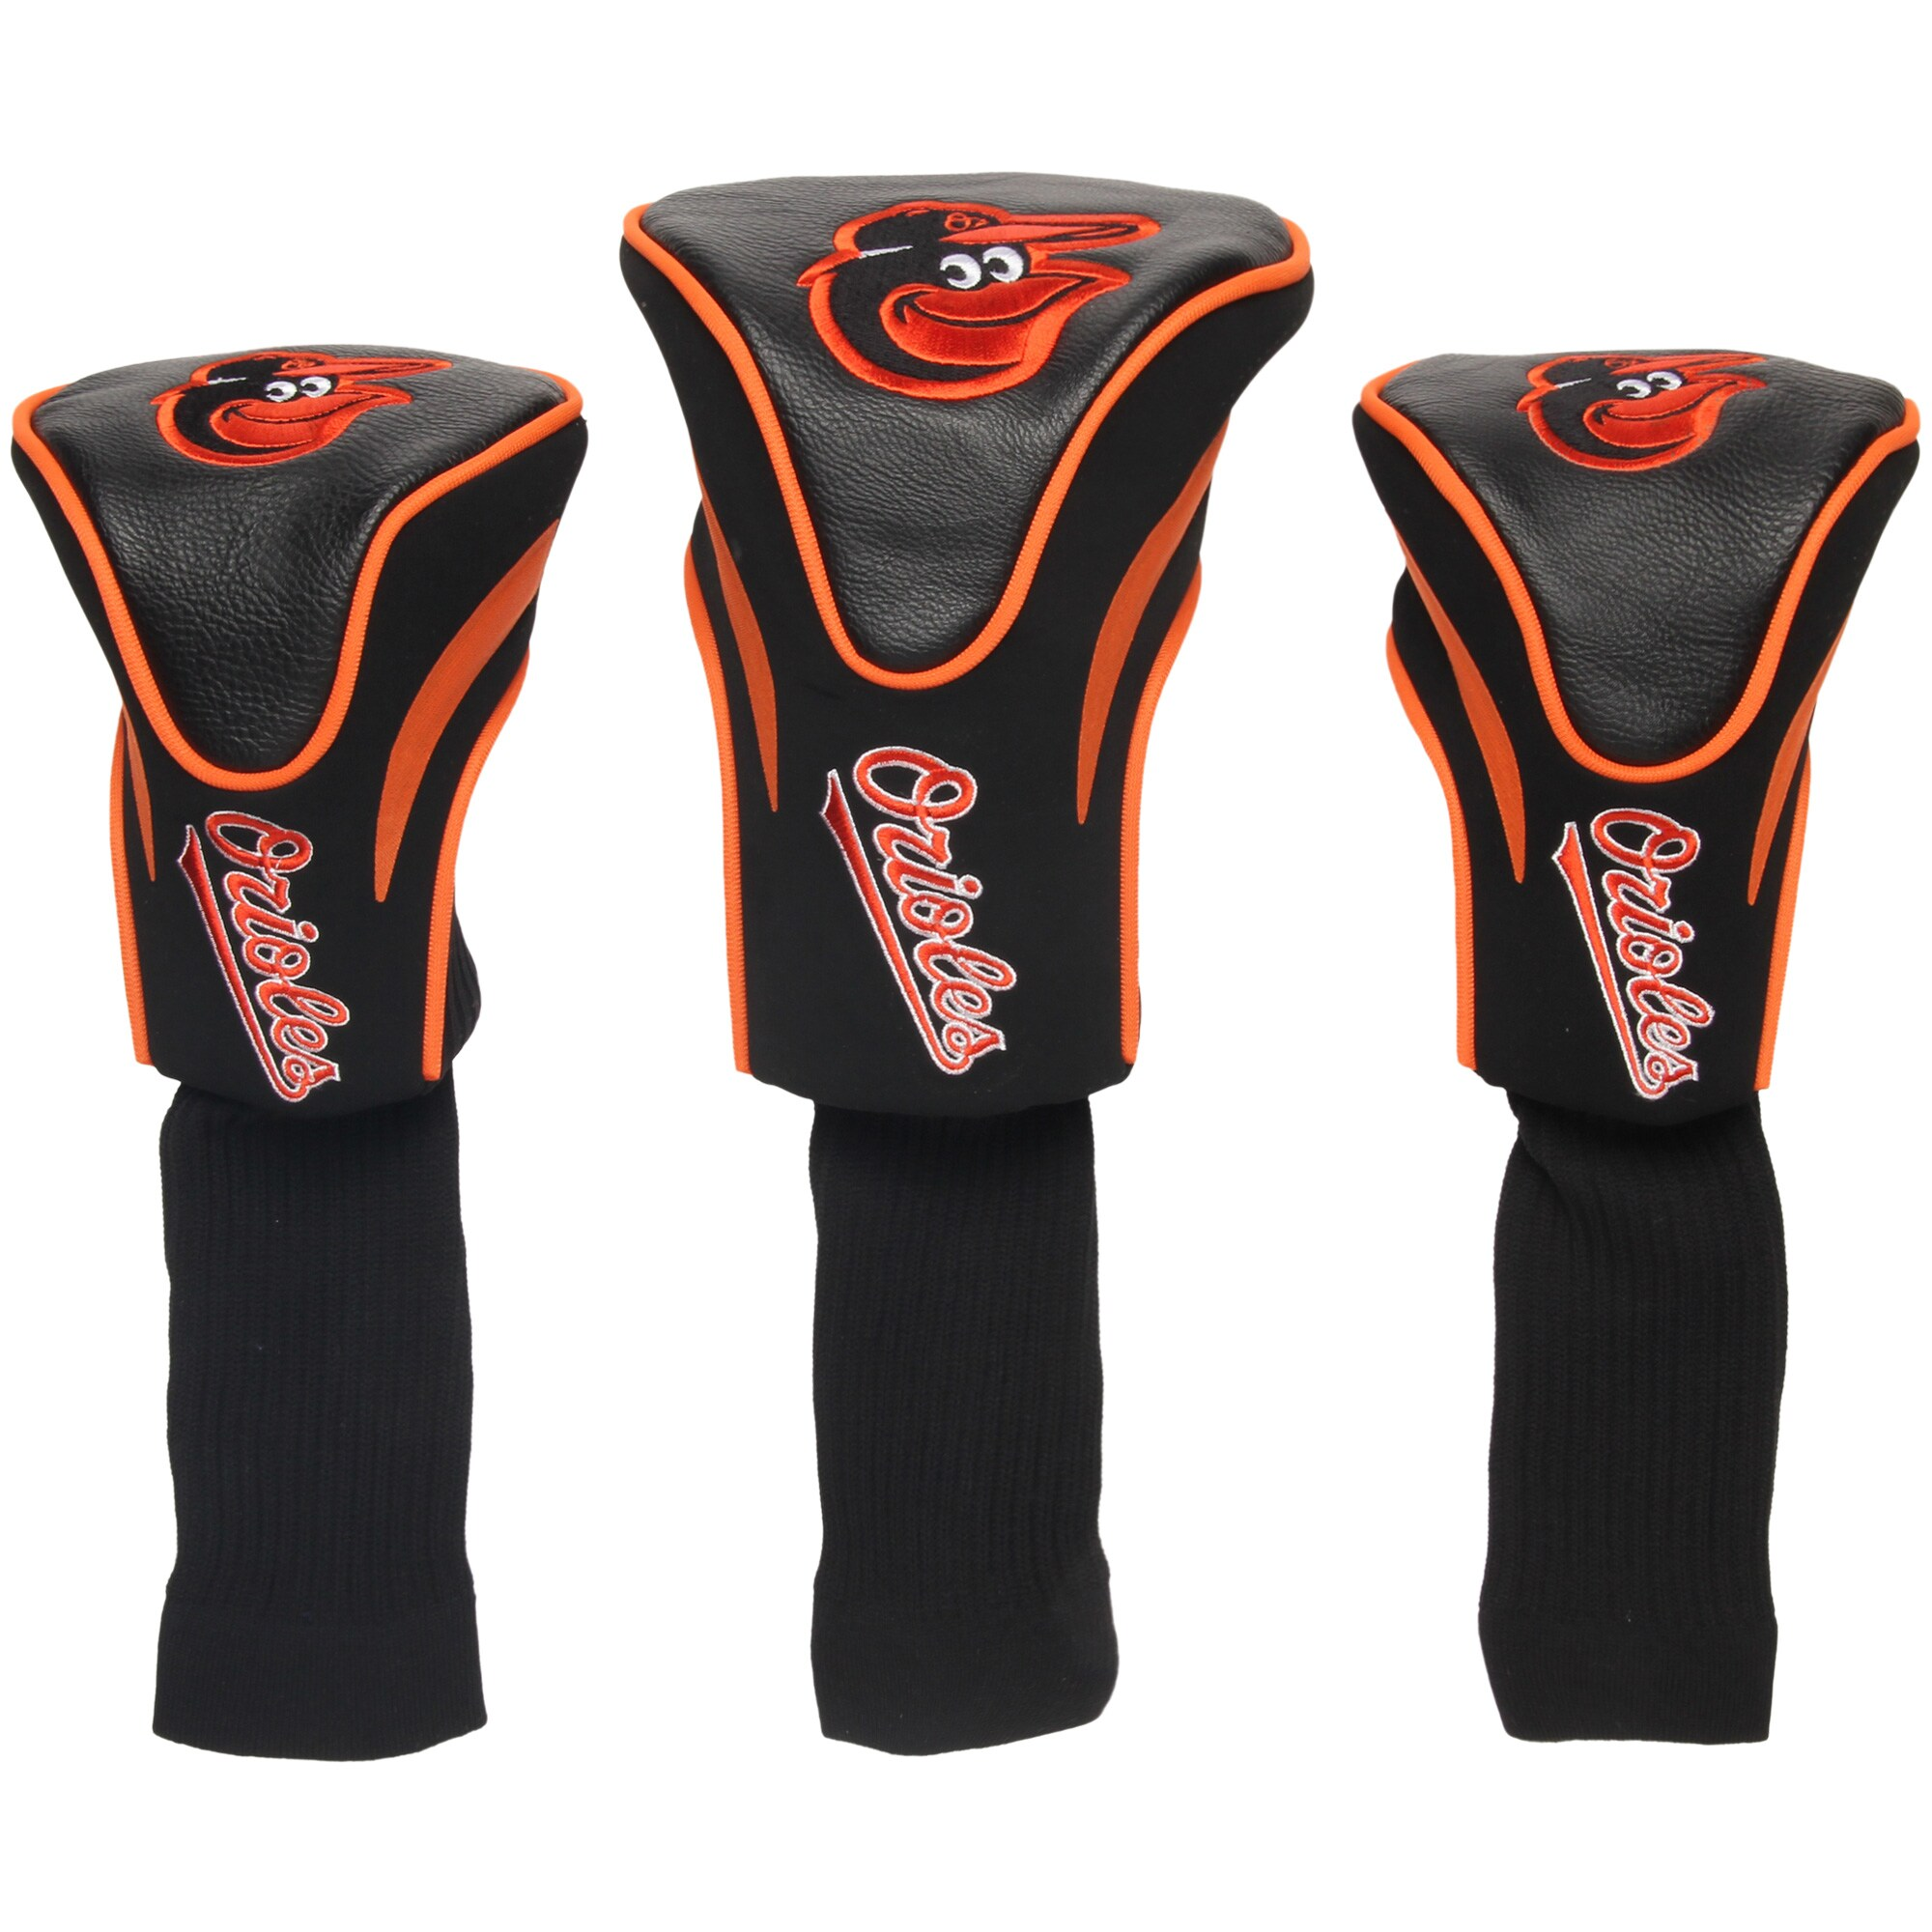 Baltimore Orioles 3-Pack Contour Golf Club Head Covers -